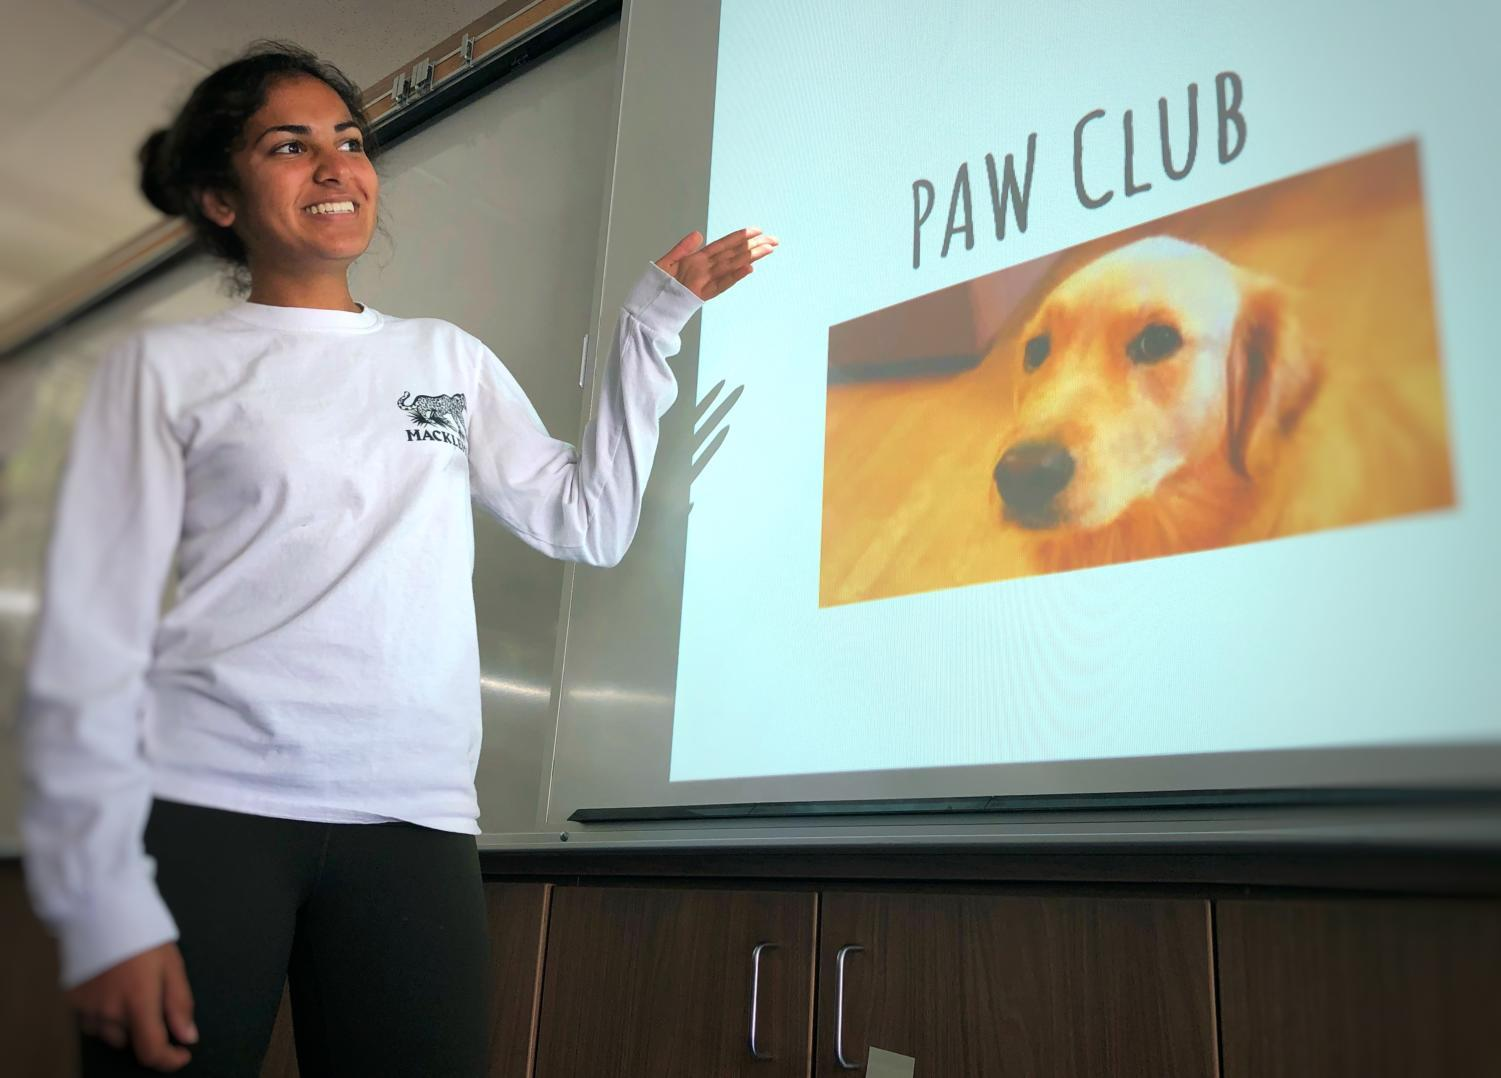 PAW Club President Soni Kanaya informs her club members about upcoming events during their regular Wednesday lunch meeting held in room S23.